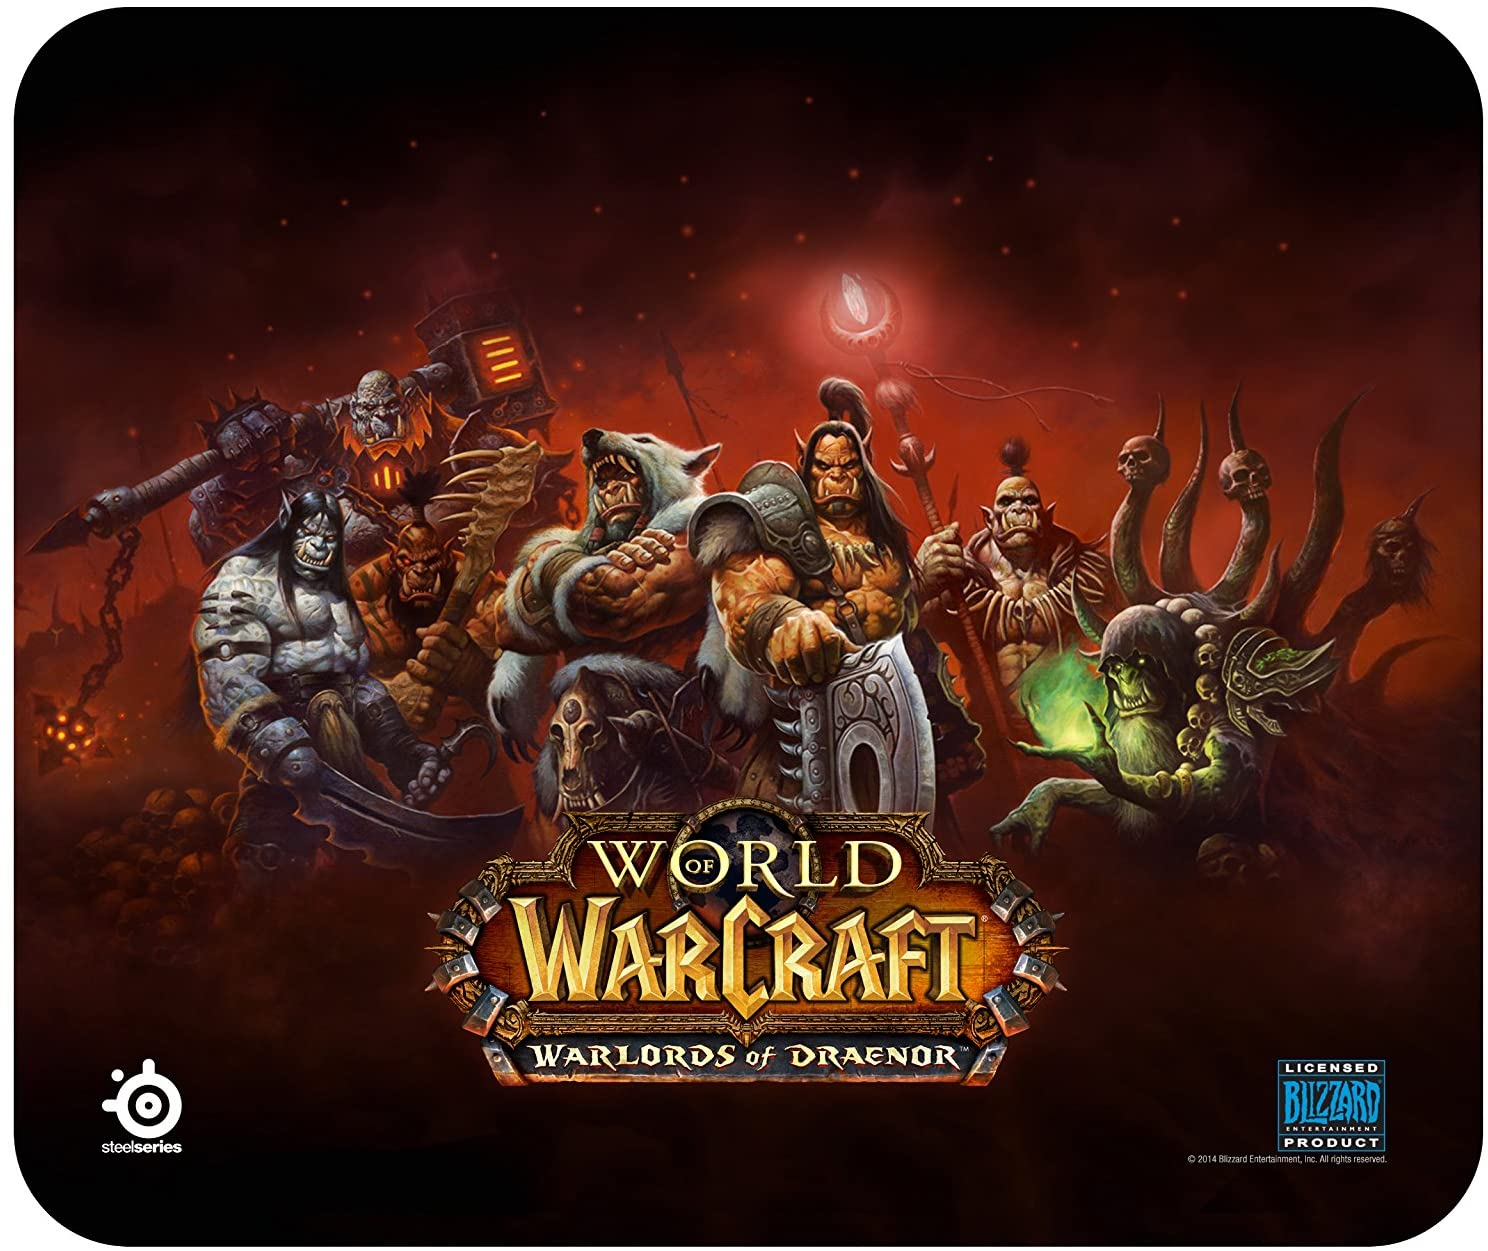 MOUSEPAD STEELSERIES WORLD OF WARCRAFT WARLORDS OF DRAENOR